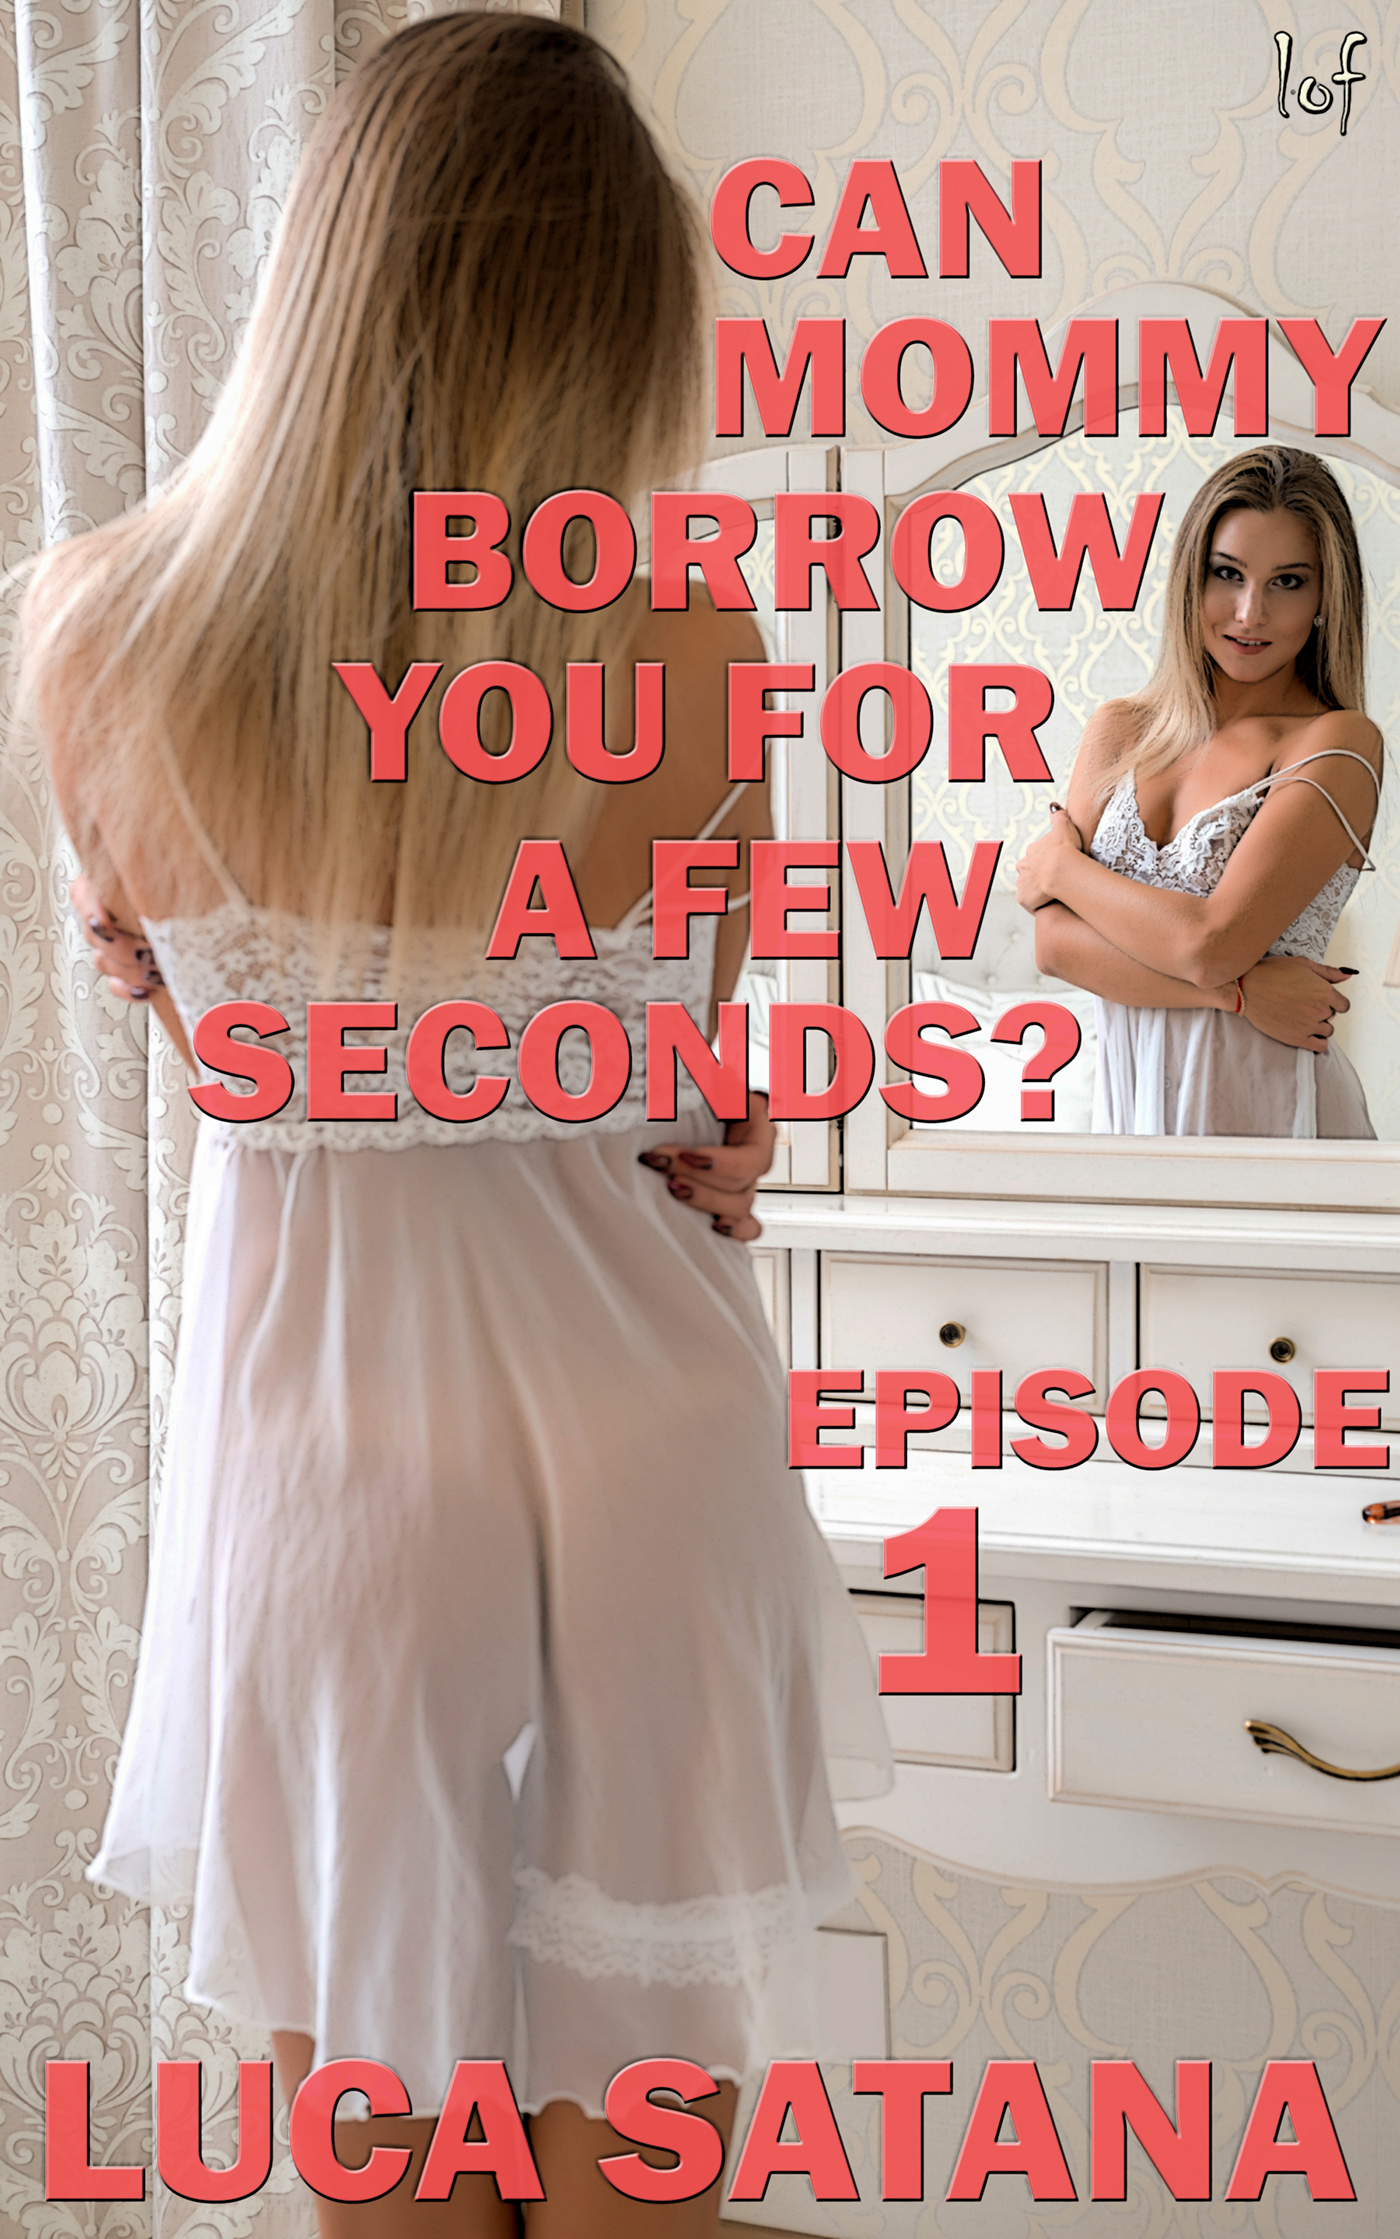 Can Mommy Borrow You For A Few Seconds?: Episode 1